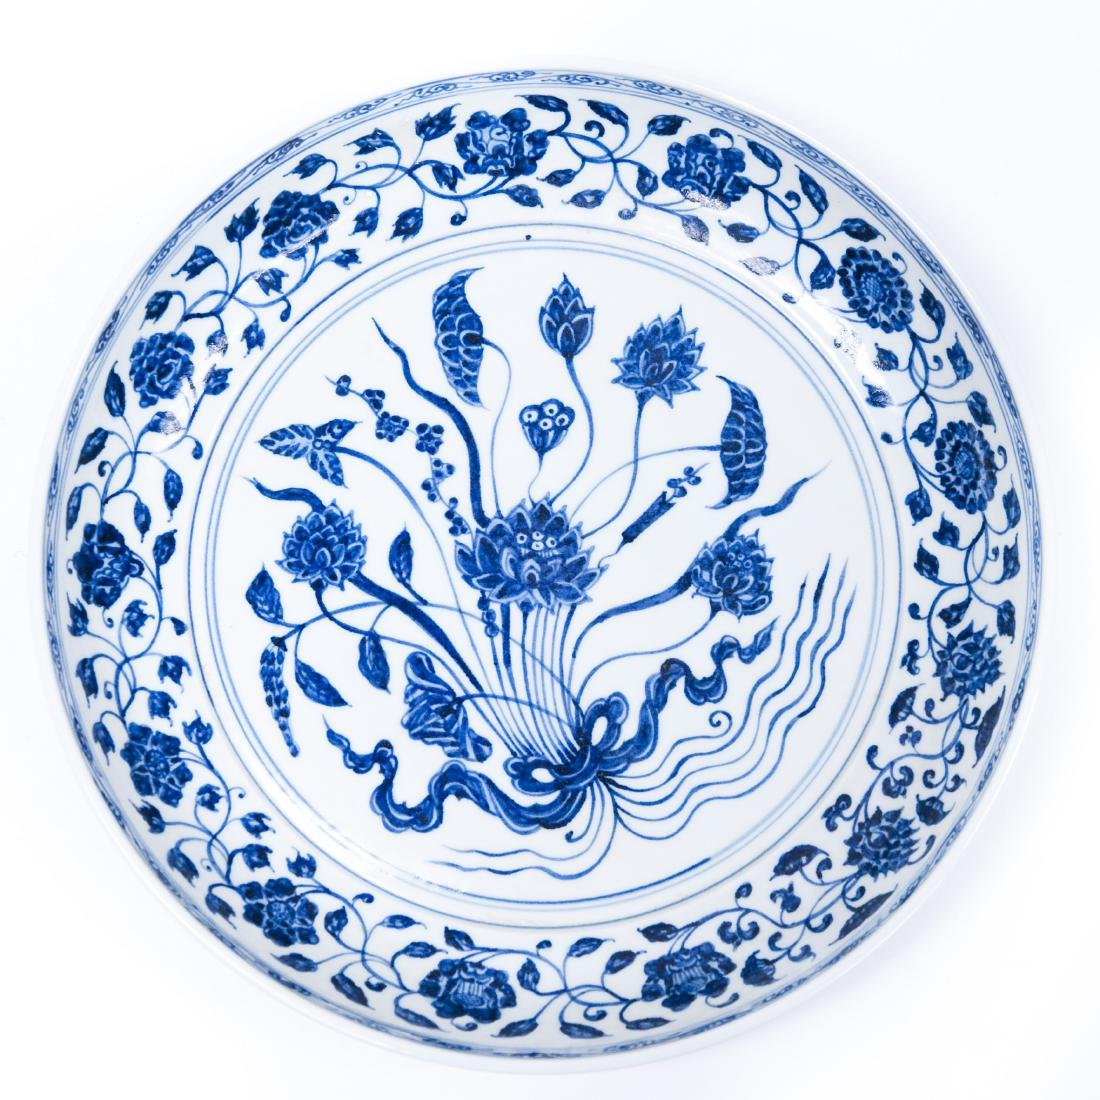 Chinese Blue and White Porcelain Charger / Bowl.